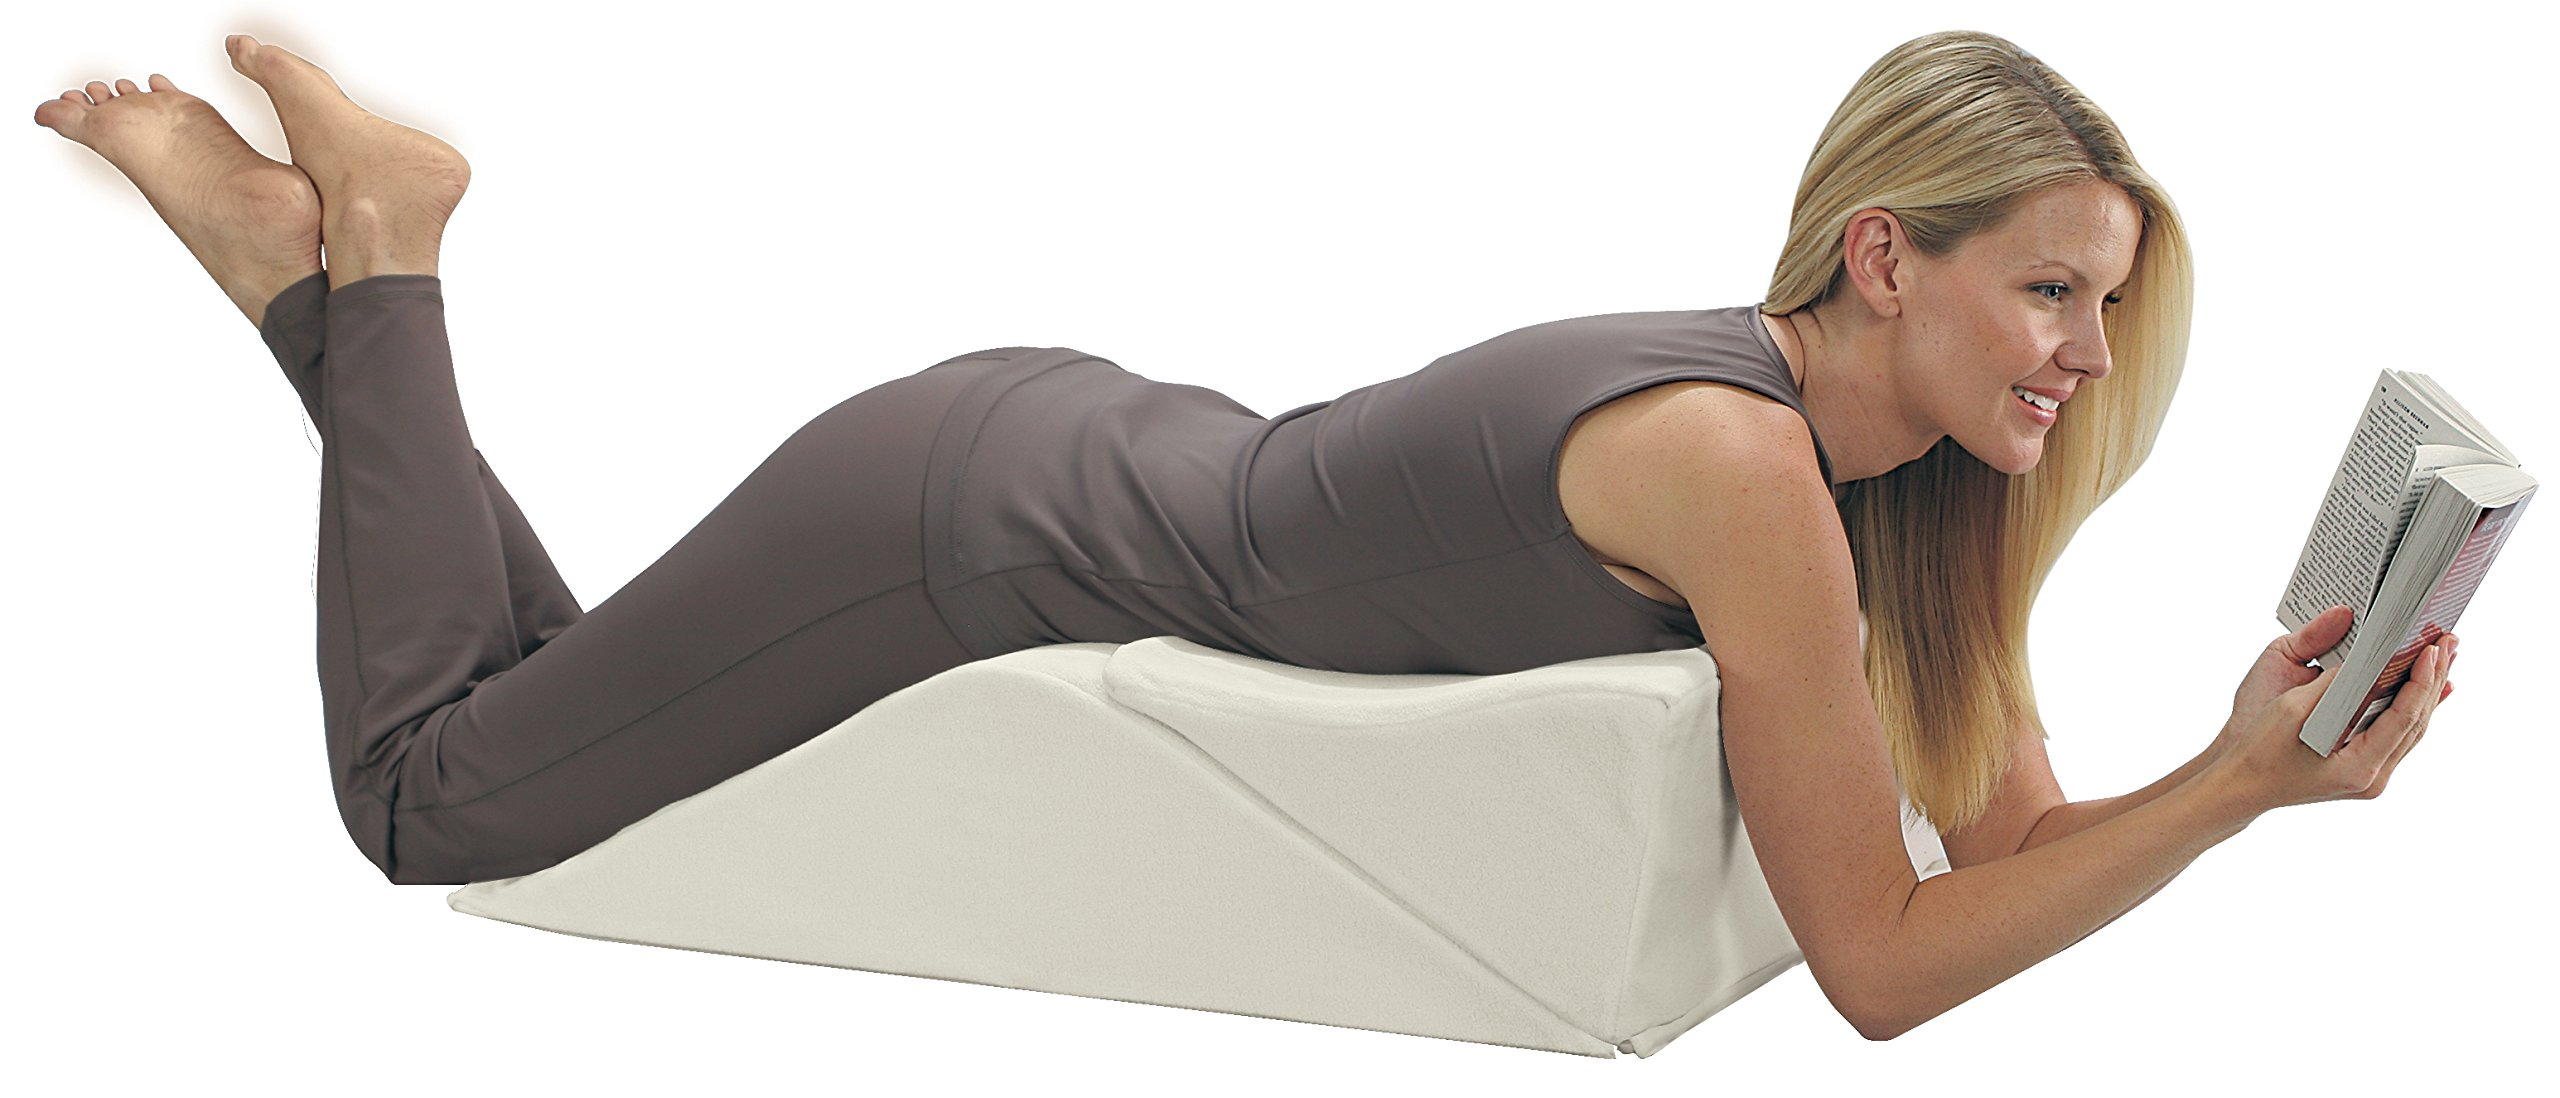 Contour Products BackMax Full Body Foam Bed Wedge Pillow System, Plus 2.0 by Contour (Image #2)